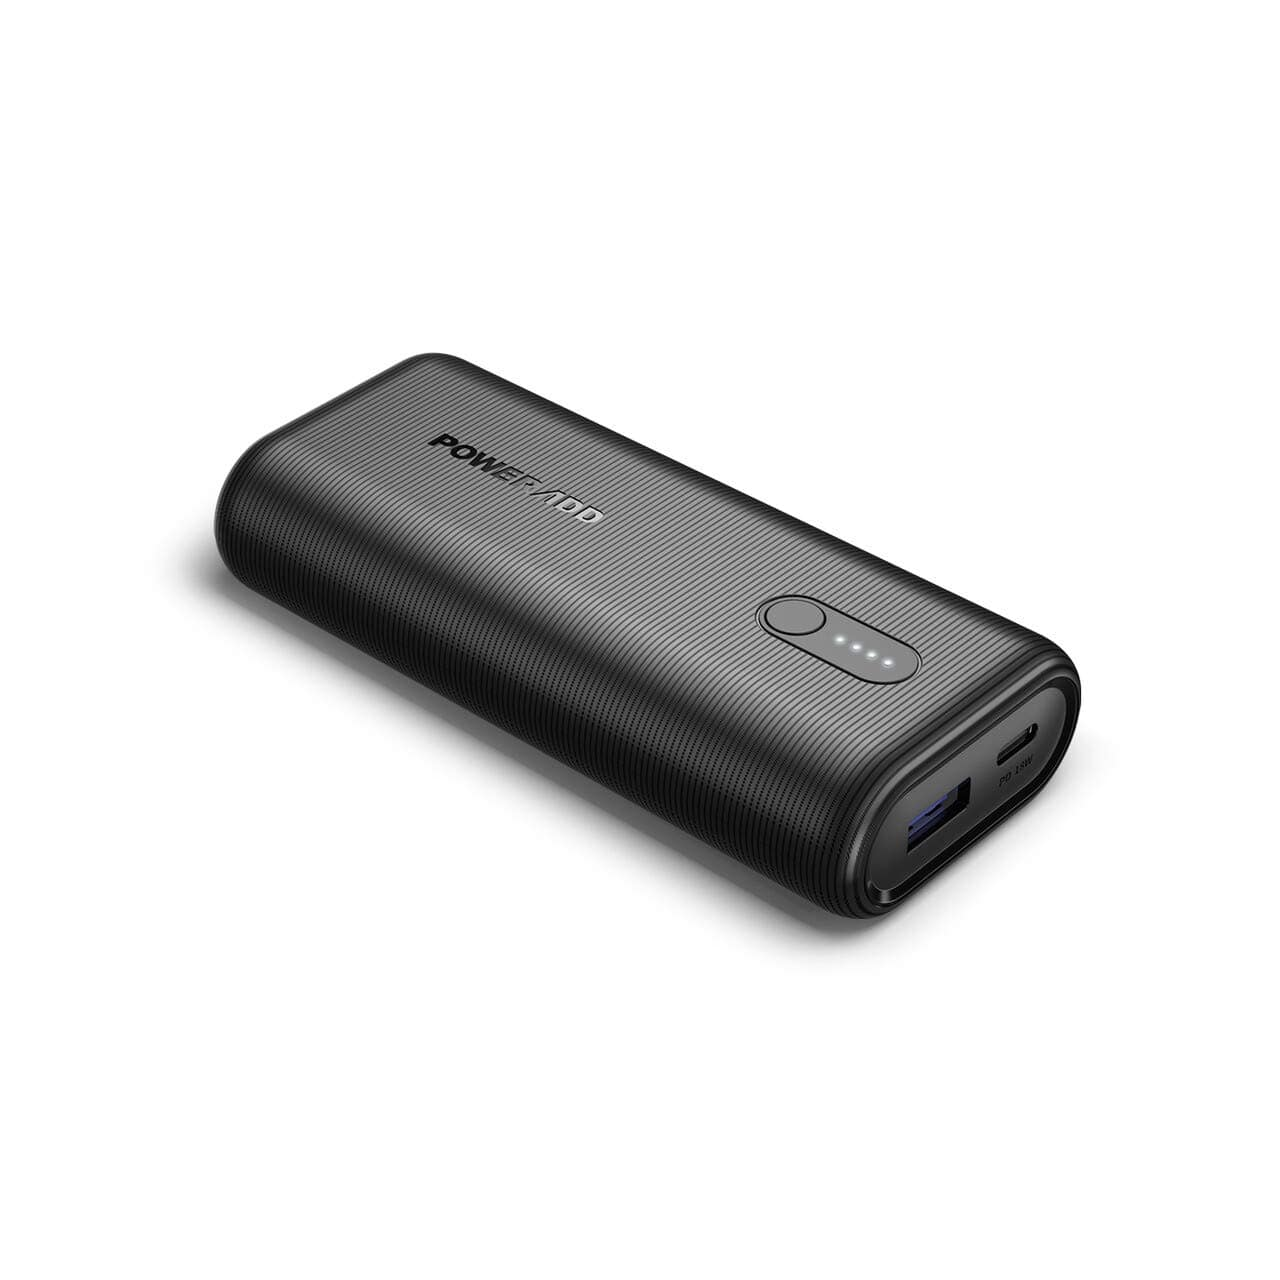 POWERADD EnergyCell Ⅱ 10000 Portable Charger PD 18W - $11.46 + FS (Amazon Lightning Deal)